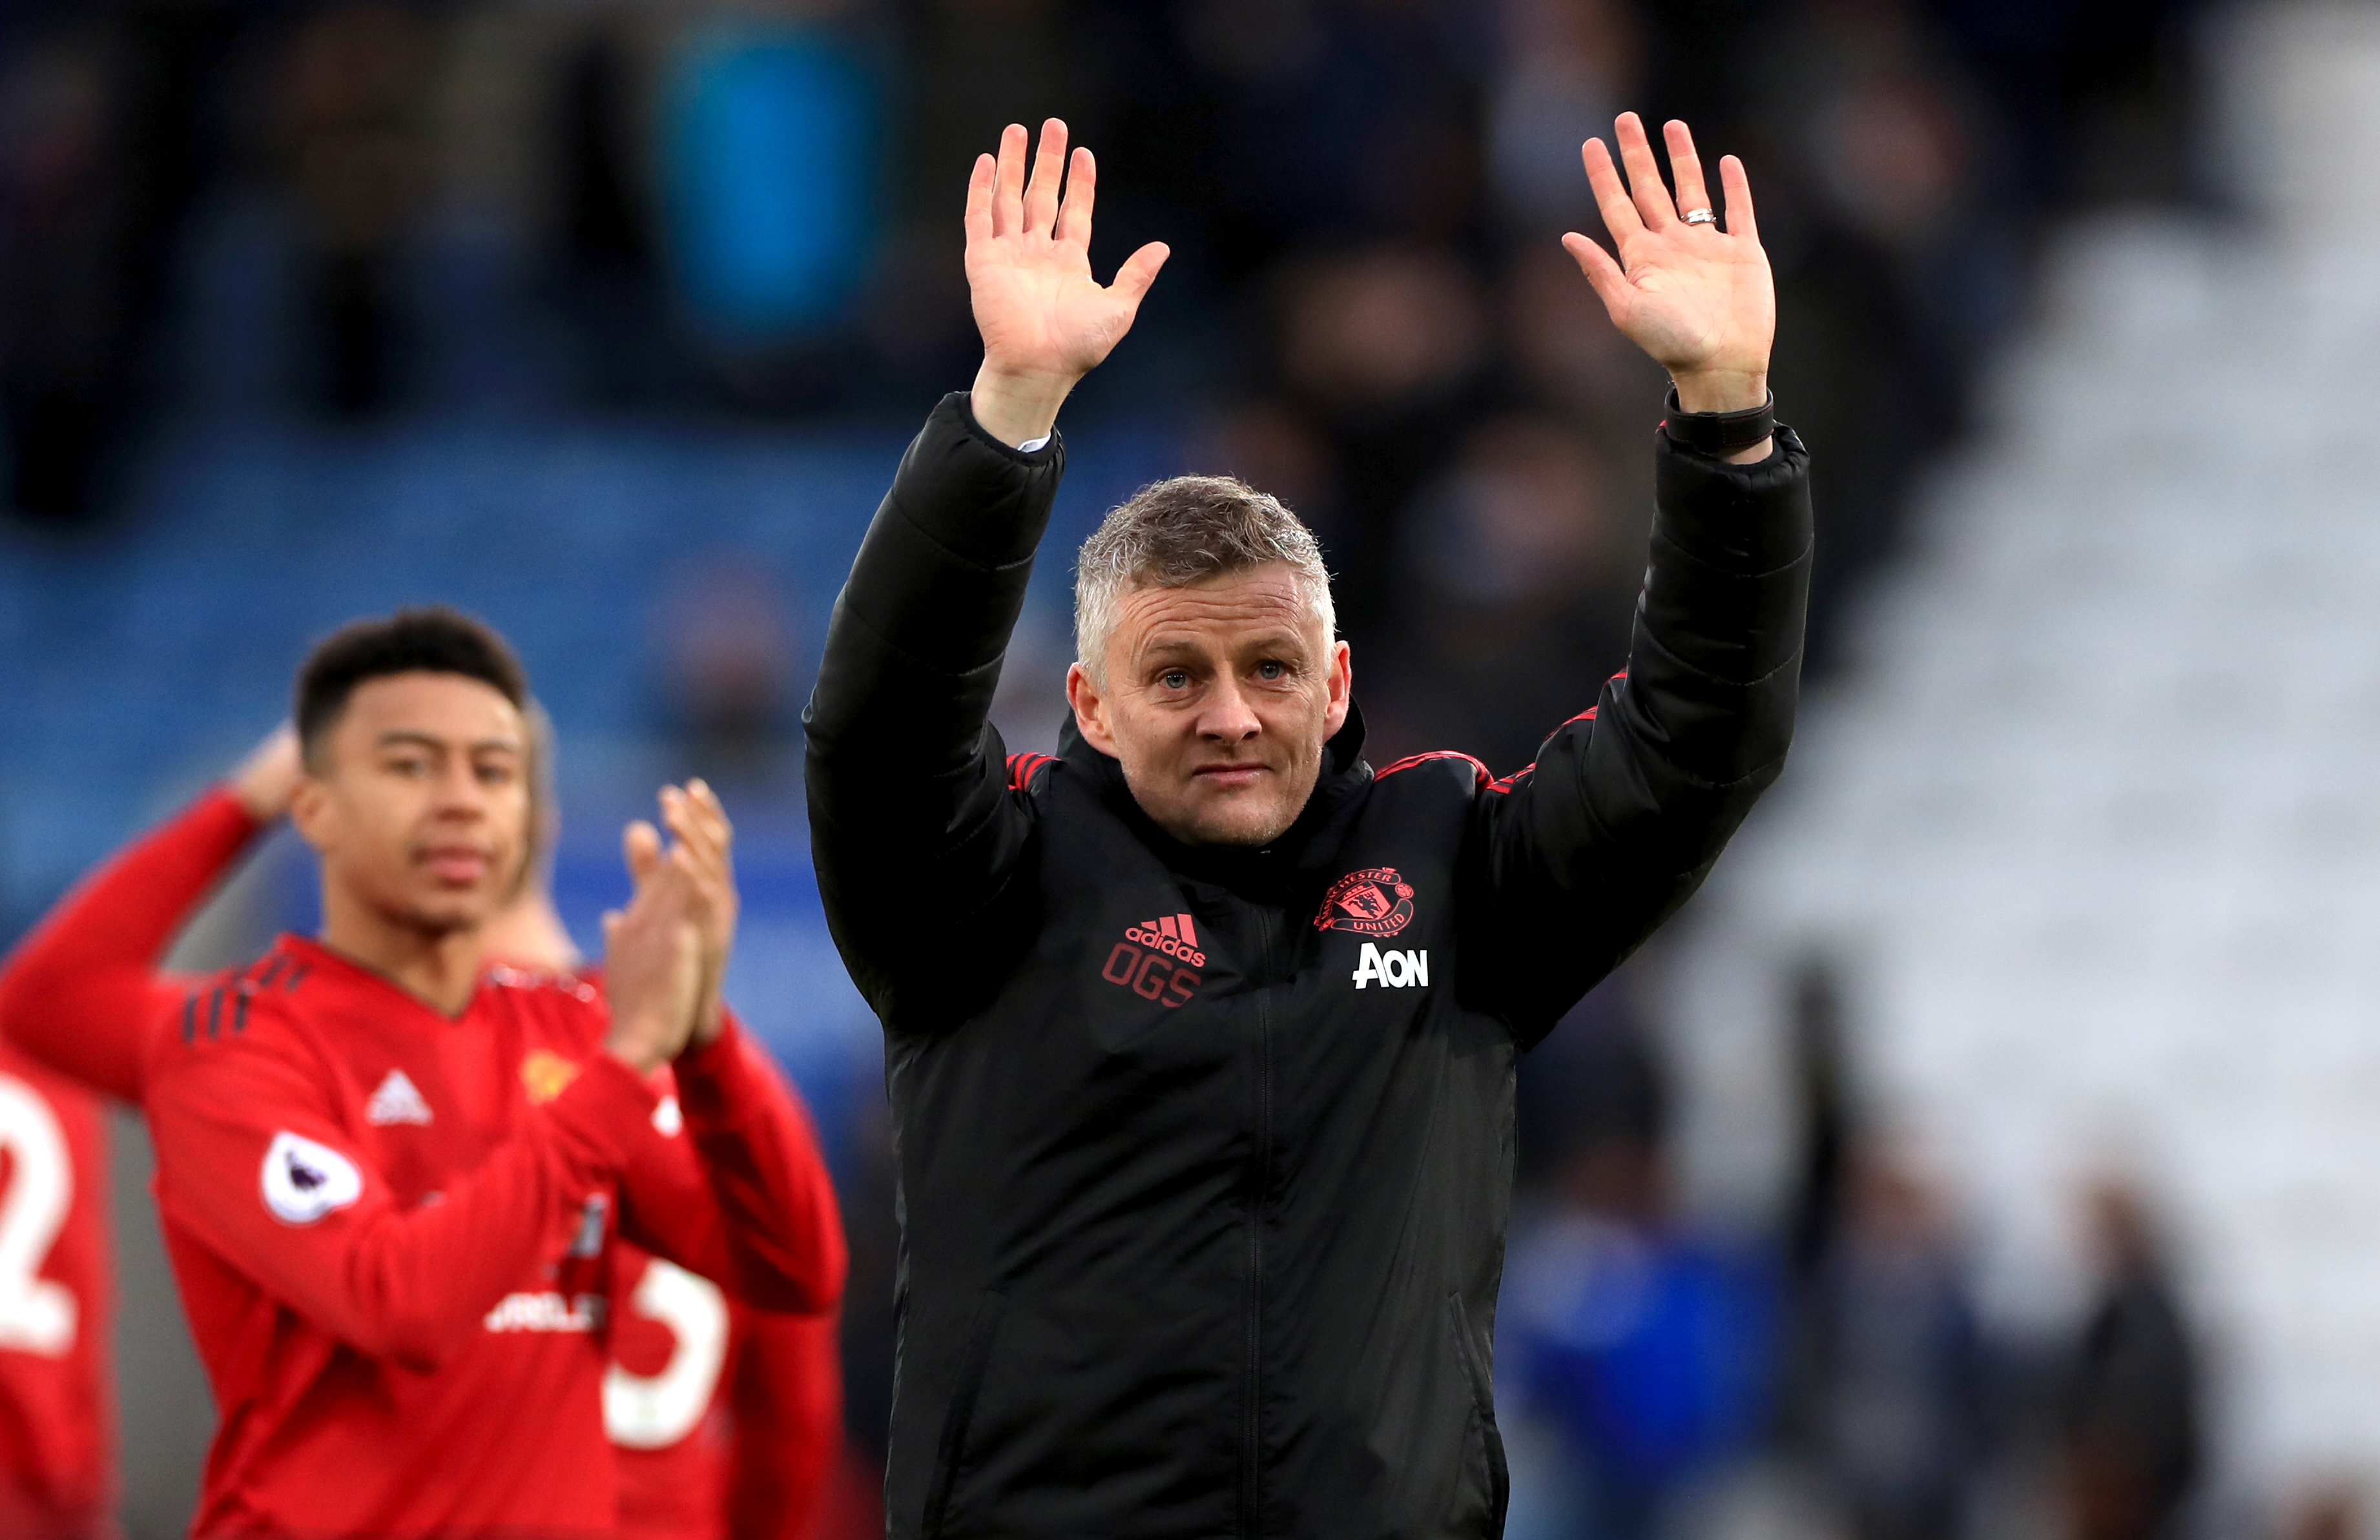 Solskjaer thanks the away fans after United's win over Leicester on Sunday. Image: PA Images